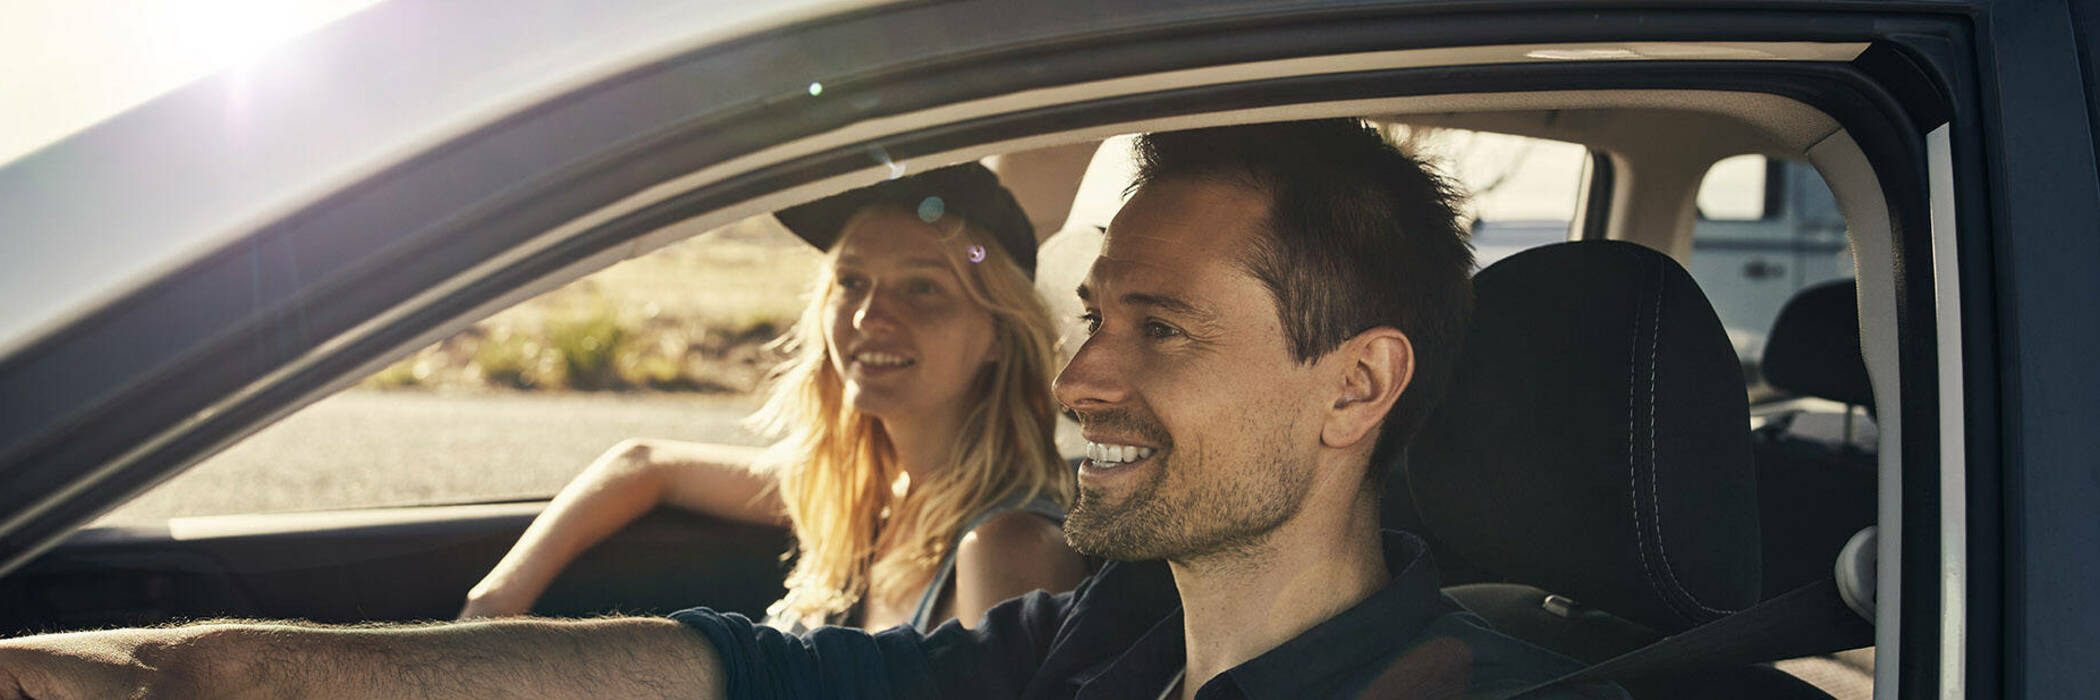 Happy man and woman in car.